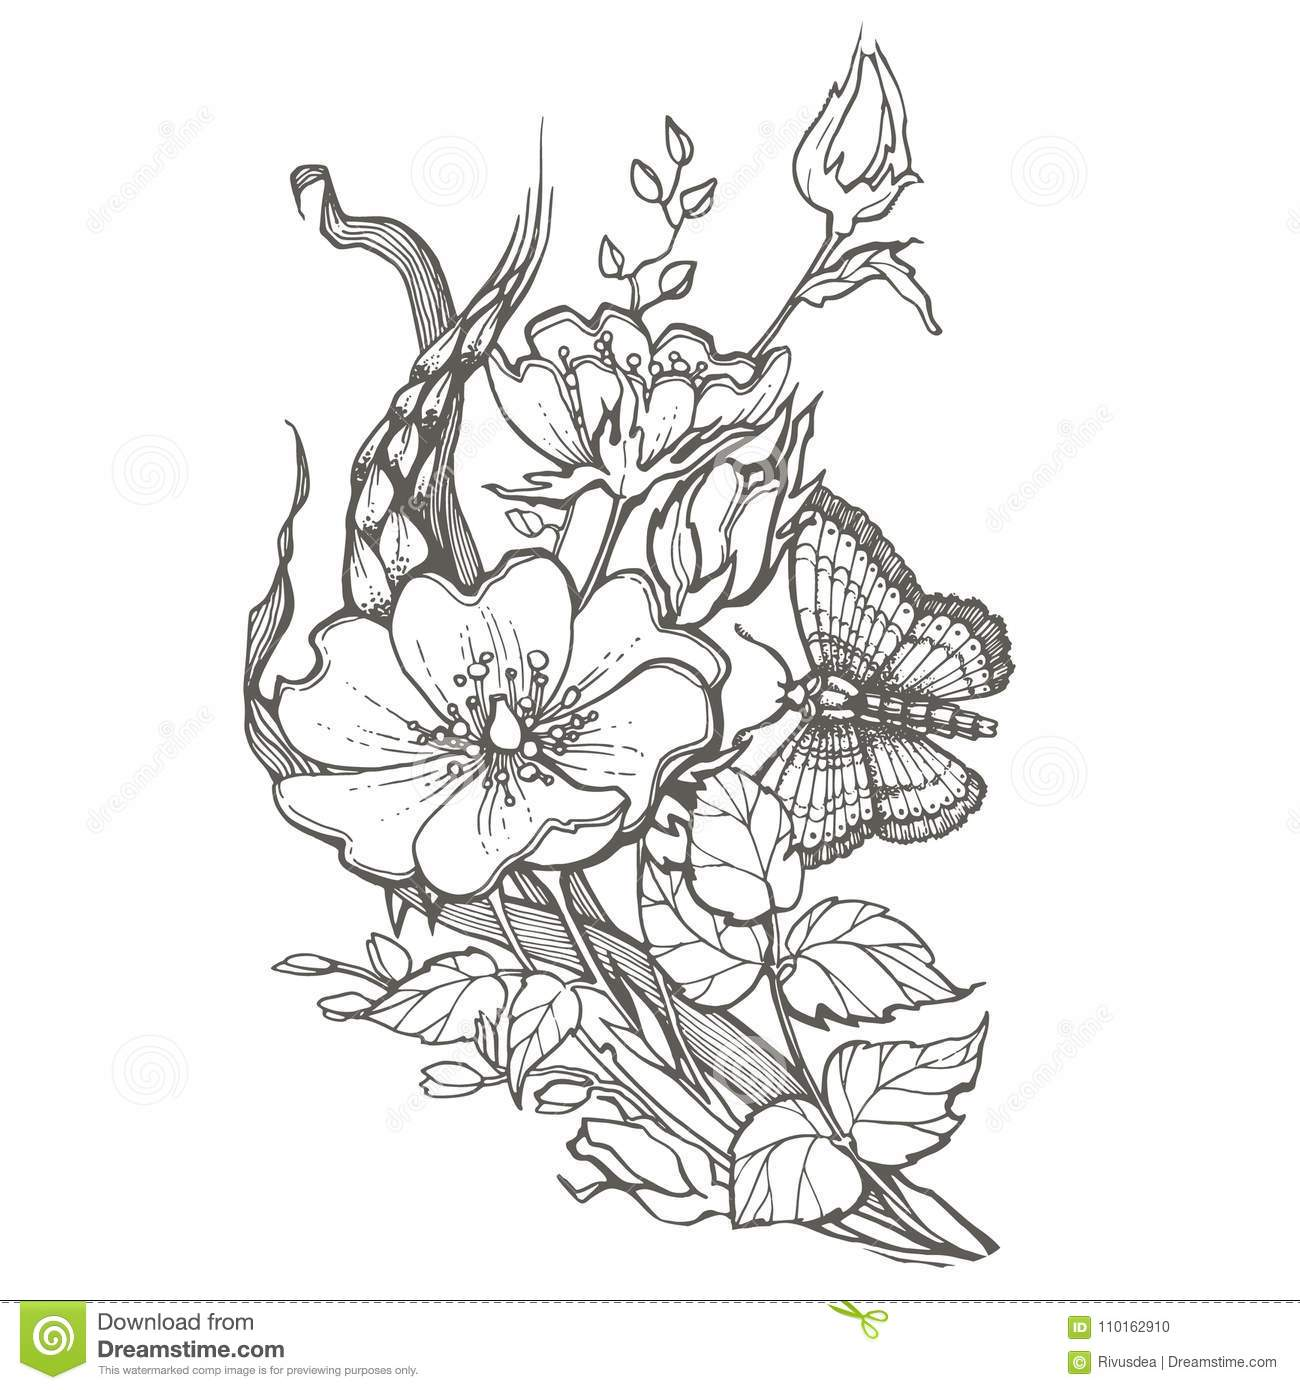 Rose Butterfly Vector Stock Illustrations 5 878 Rose Butterfly Vector Stock Illustrations Vectors Clipart Dreamstime